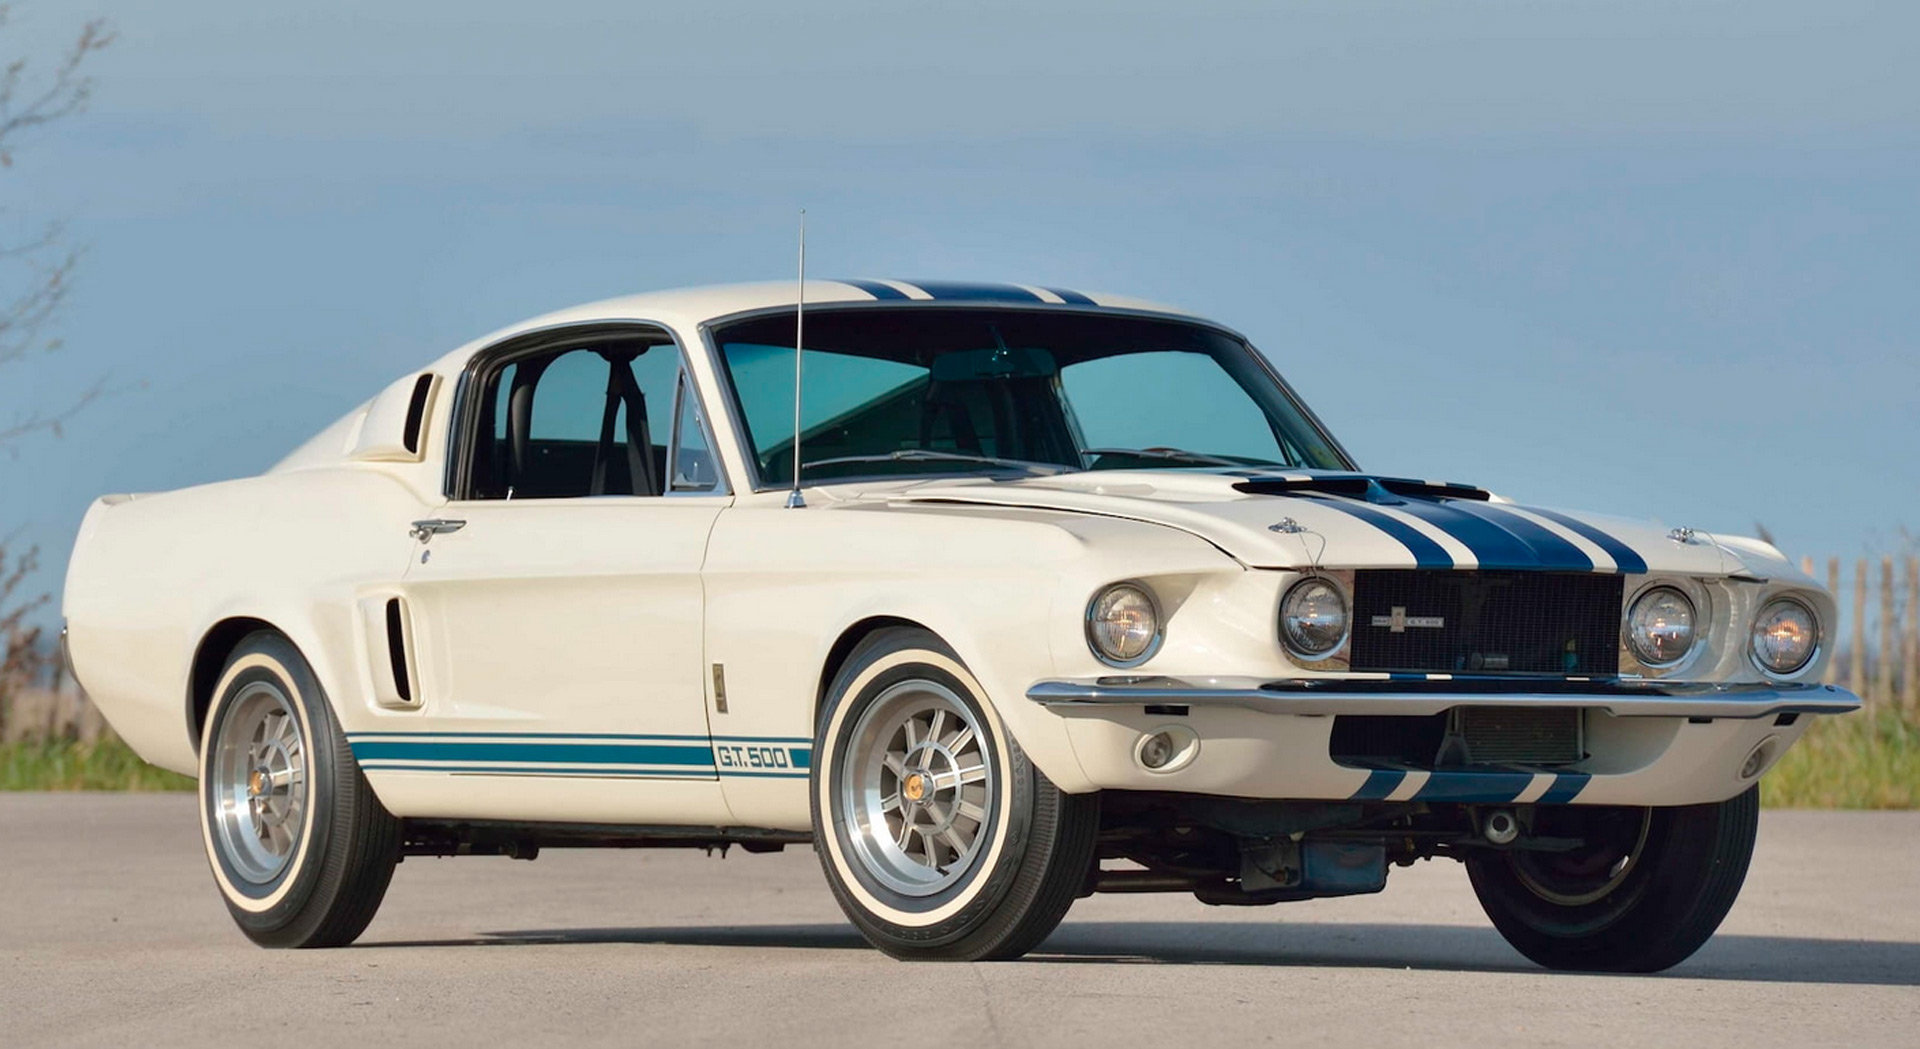 1967 shelby gt500 super snake sells for 2 2m making it worlds most expensive mustang